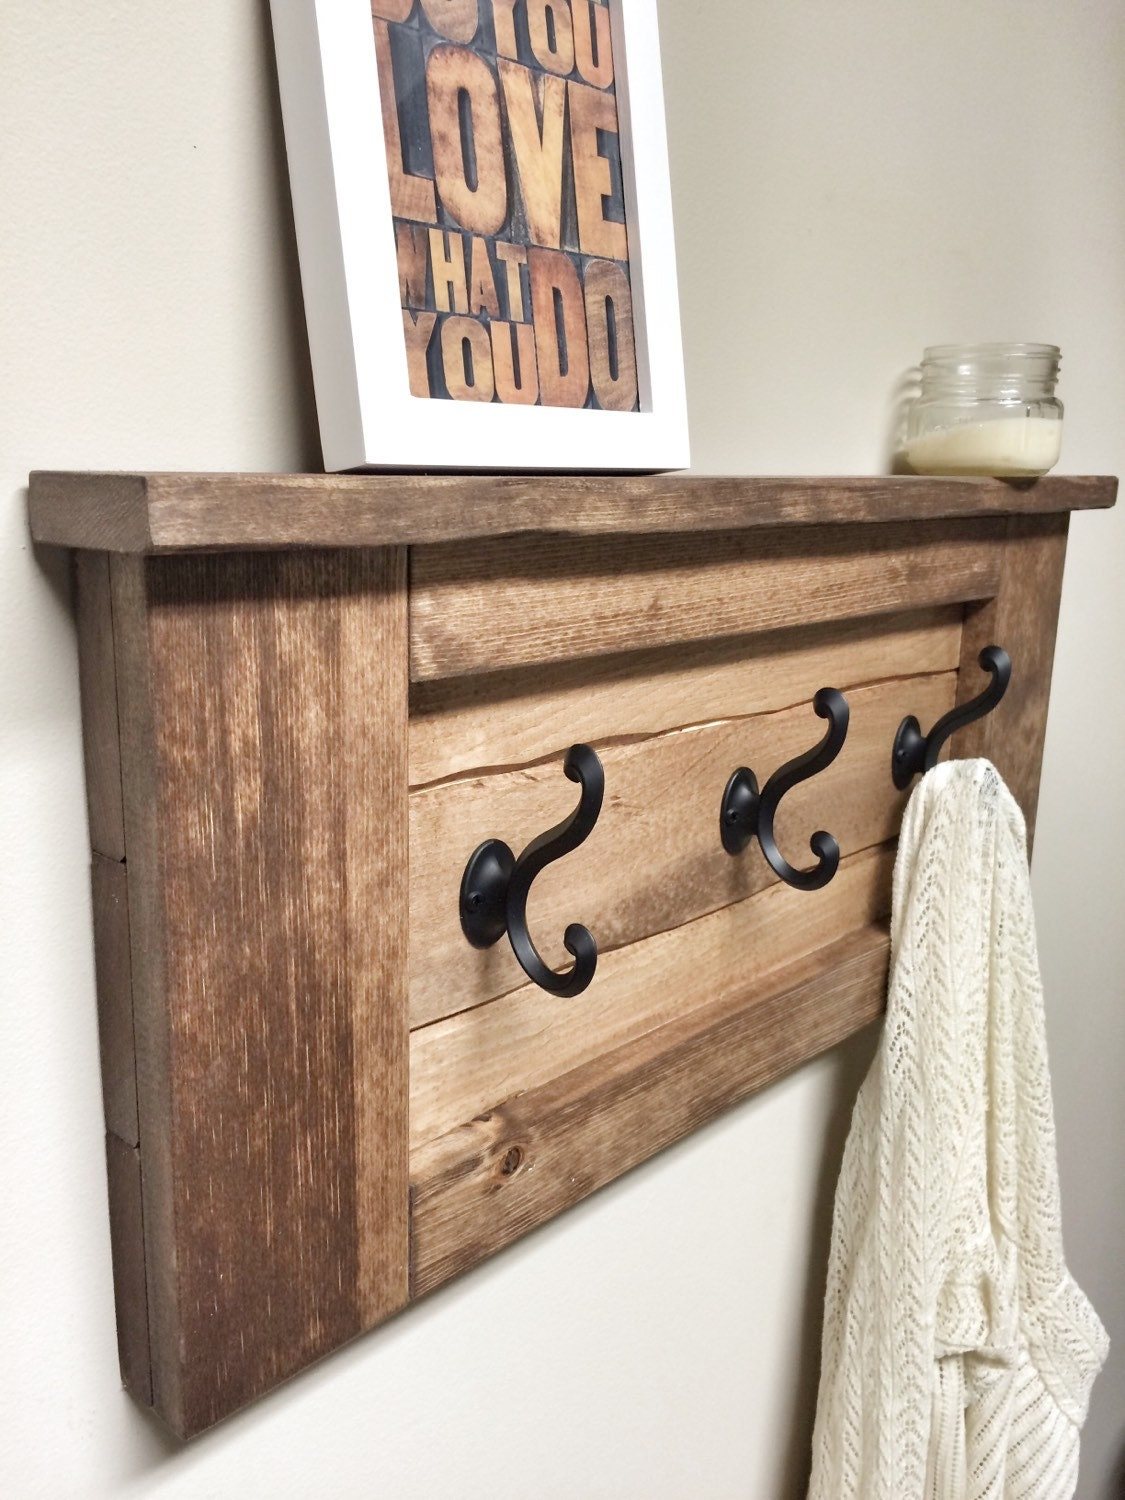 Rustic wooden entryway walnut coat rack rustic wooden shelf for Rustic home decor and woodworking